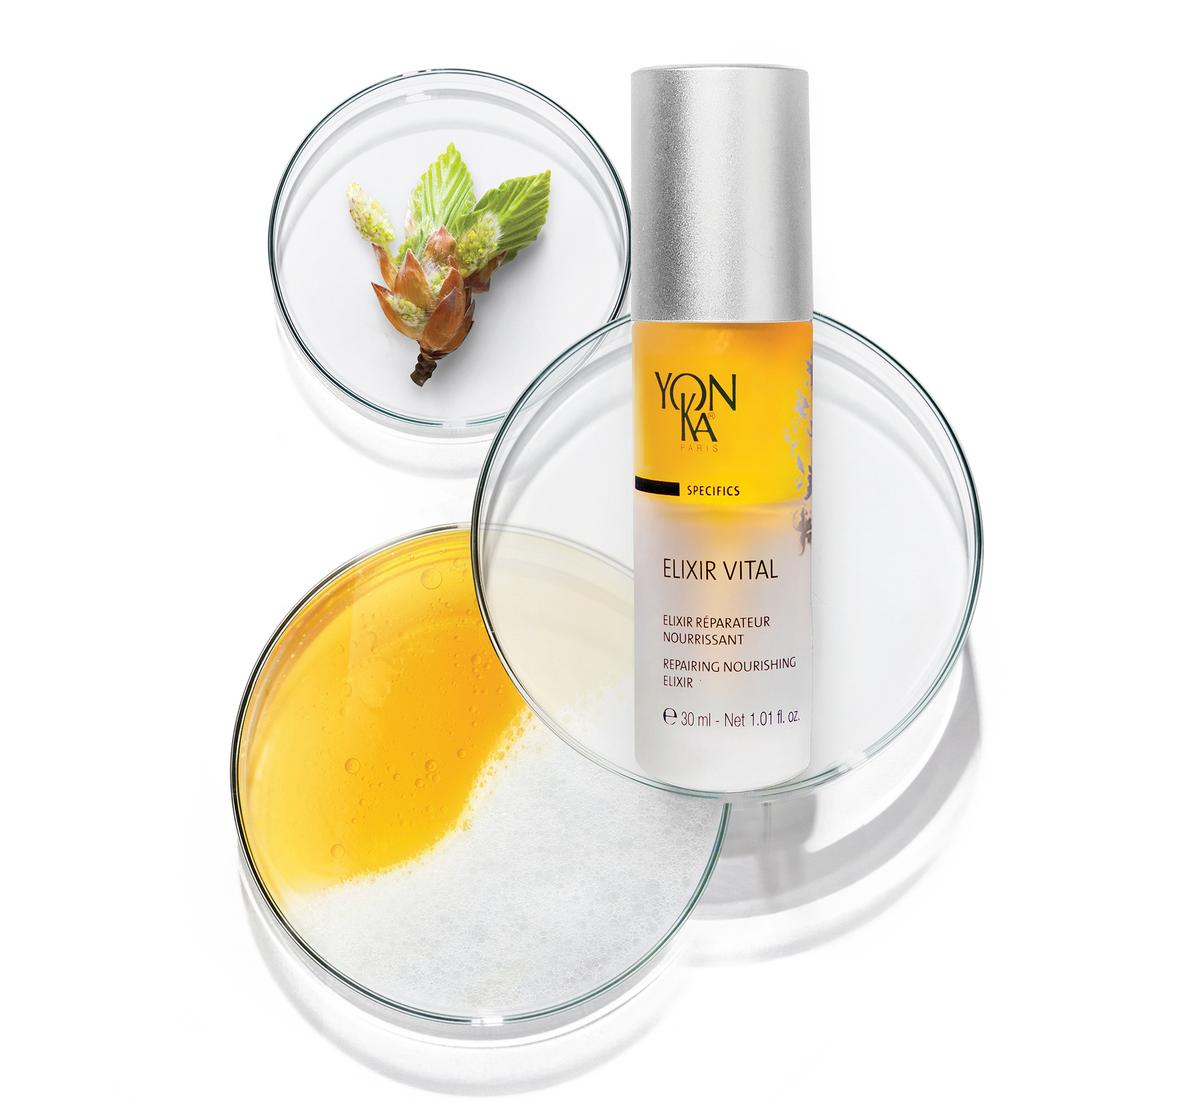 The serum is completed with Yon-Ka Quintessence, the brand's signature blend of geranium, lavender, rosemary, cypress and thyme